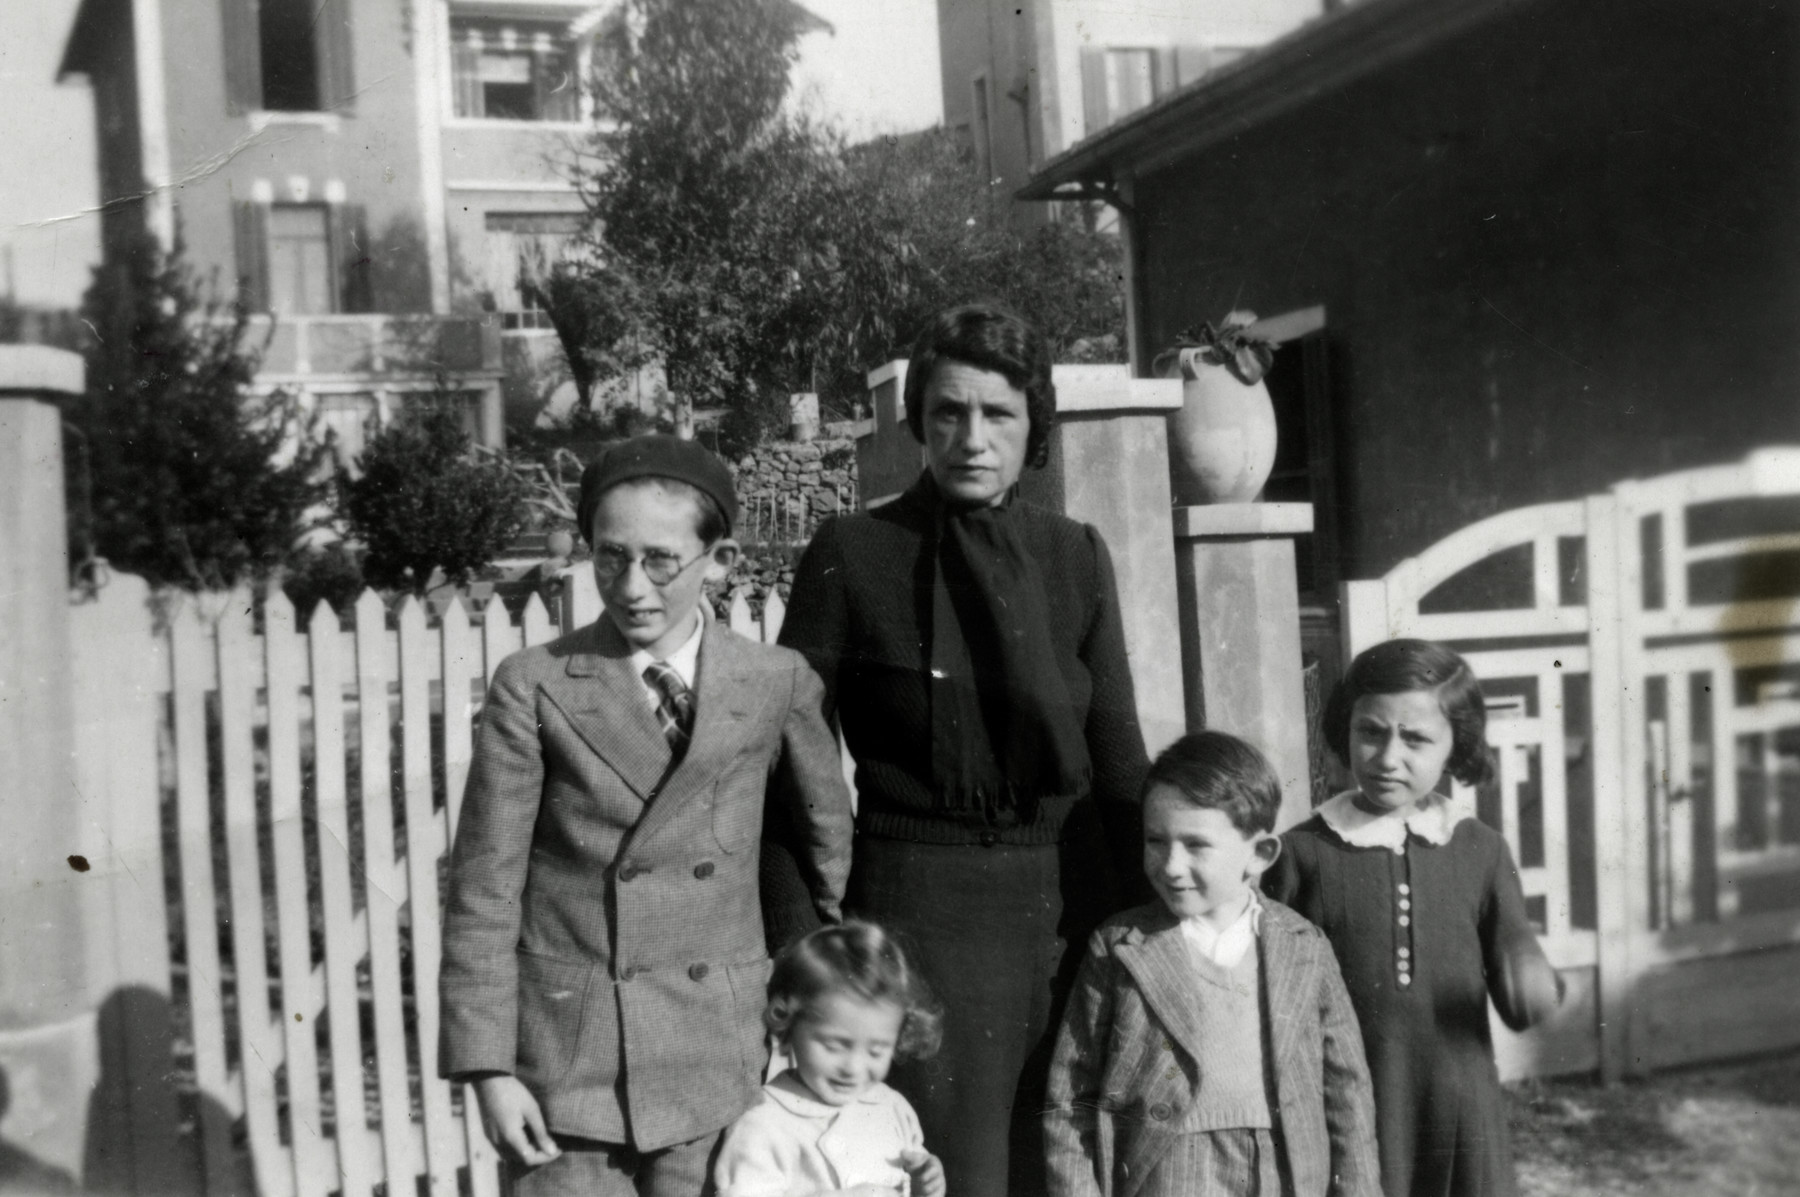 Portrait of the Schreiber family in southern France.  From left to right are Raphael, Binyamin, Joseph and Myriam.  Their mother Fanny Schreiber is standing behind them.